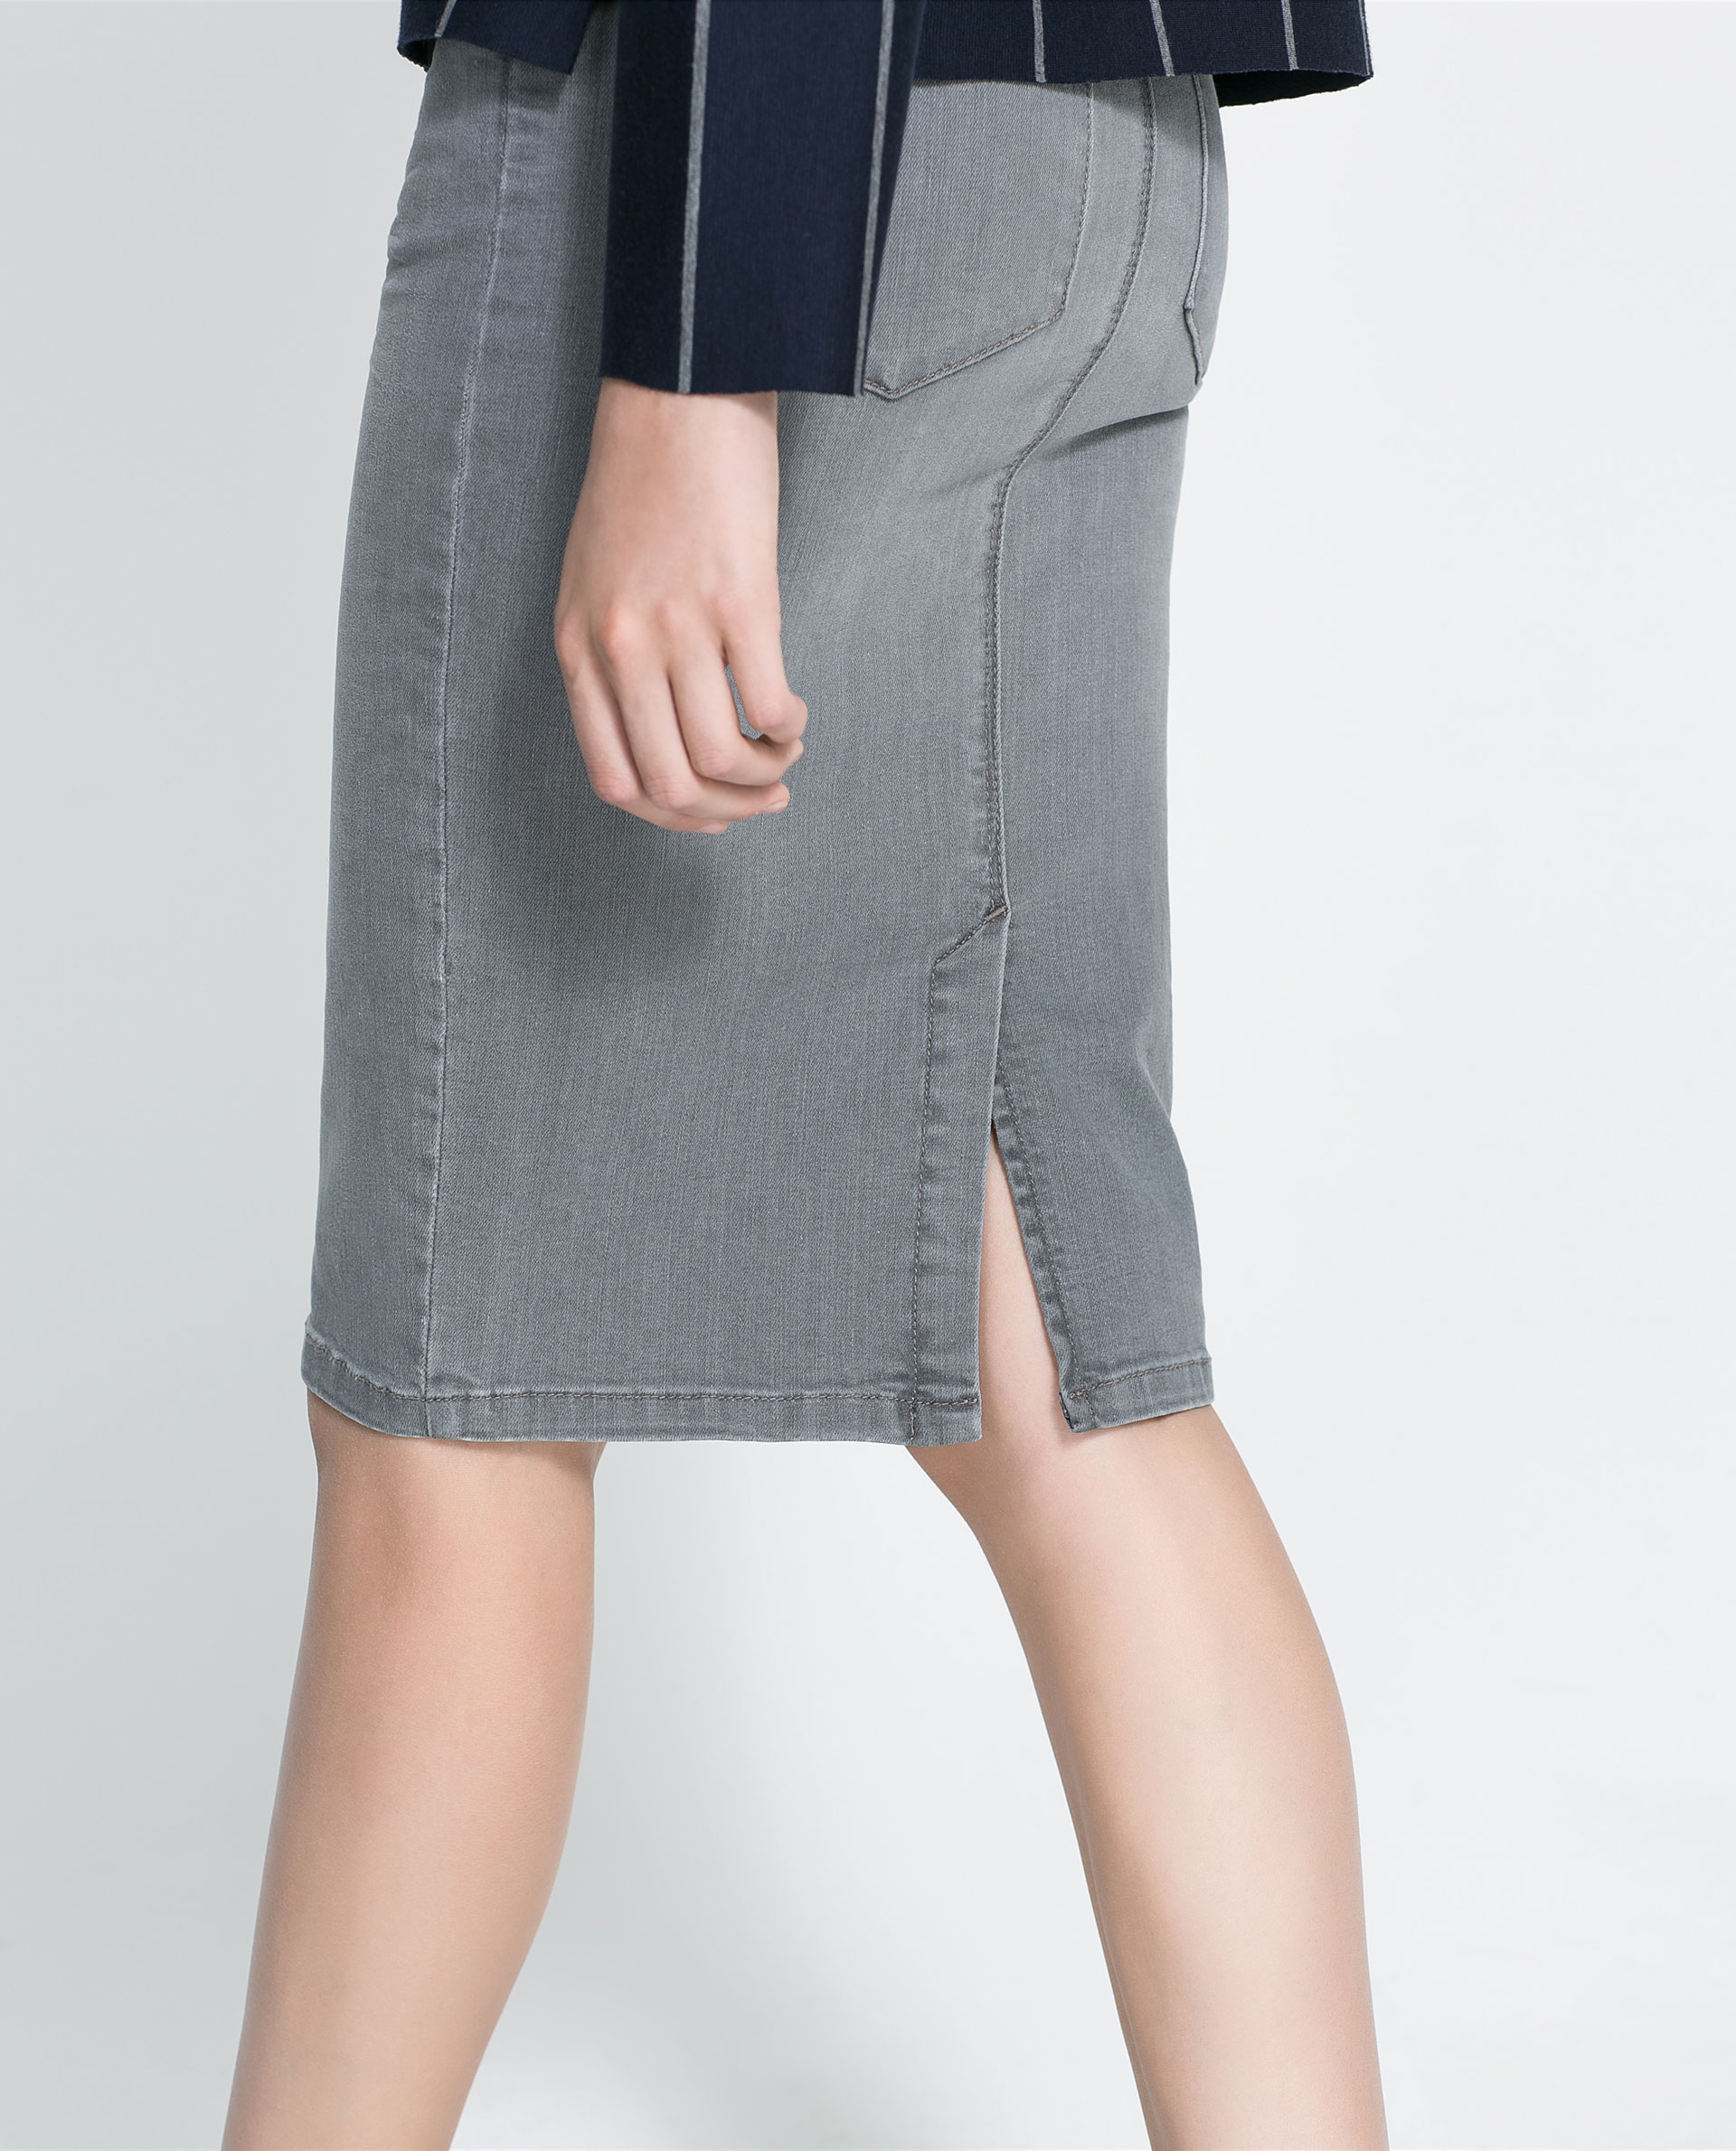 Zara Denim Pencil Skirt in Gray | Lyst